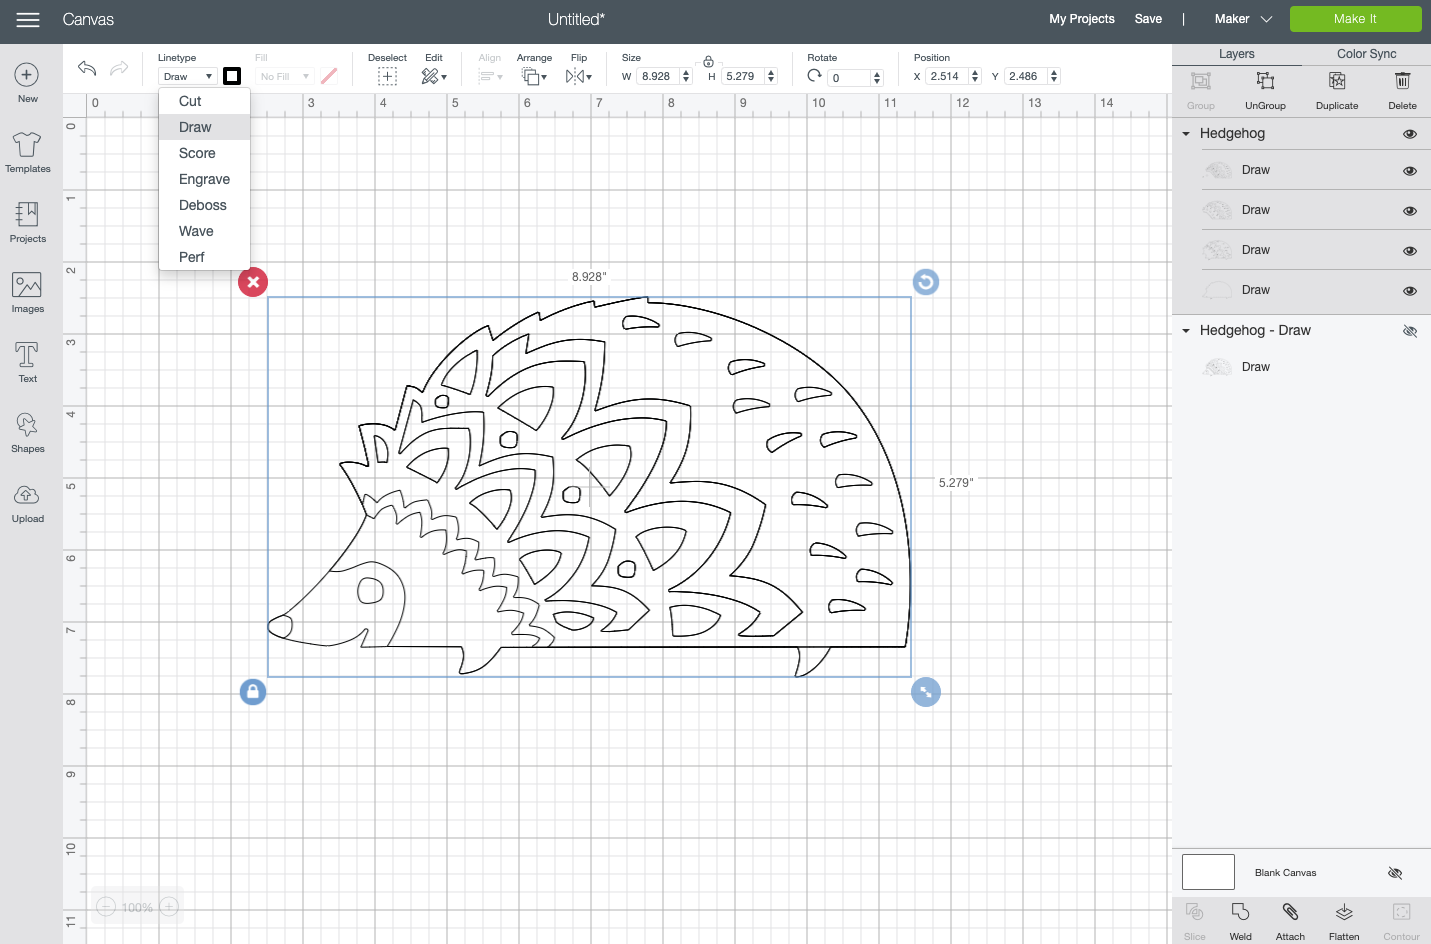 Cricut Design Space: Cut file hedgehog converted to draw file